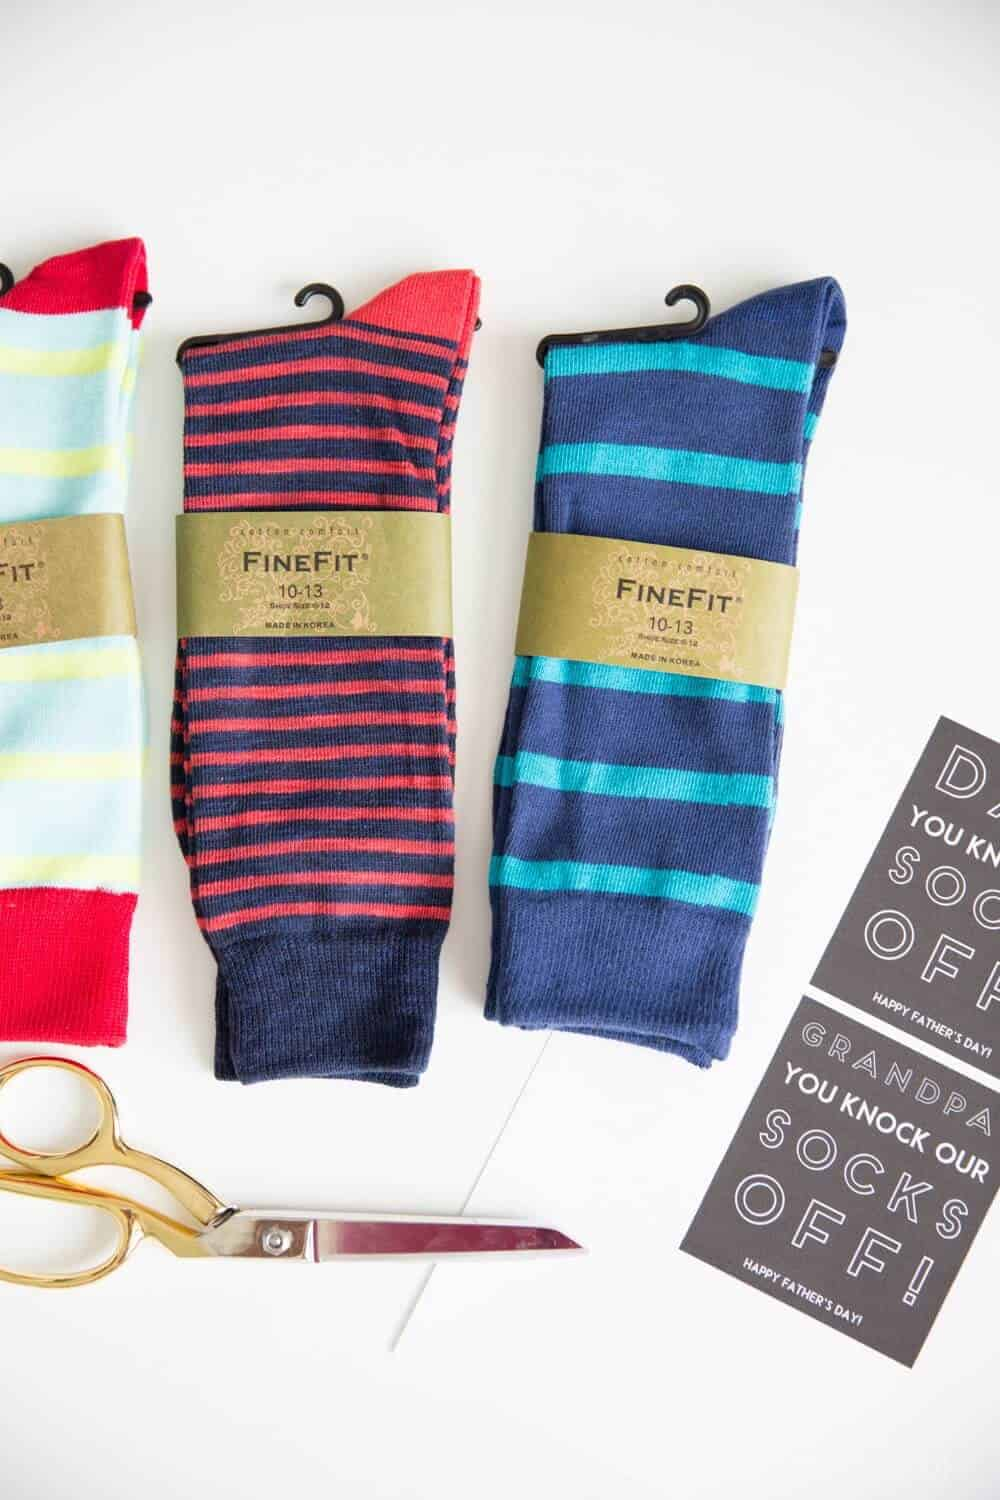 Father's Day Gift Idea- You Knock Our Socks Off-3